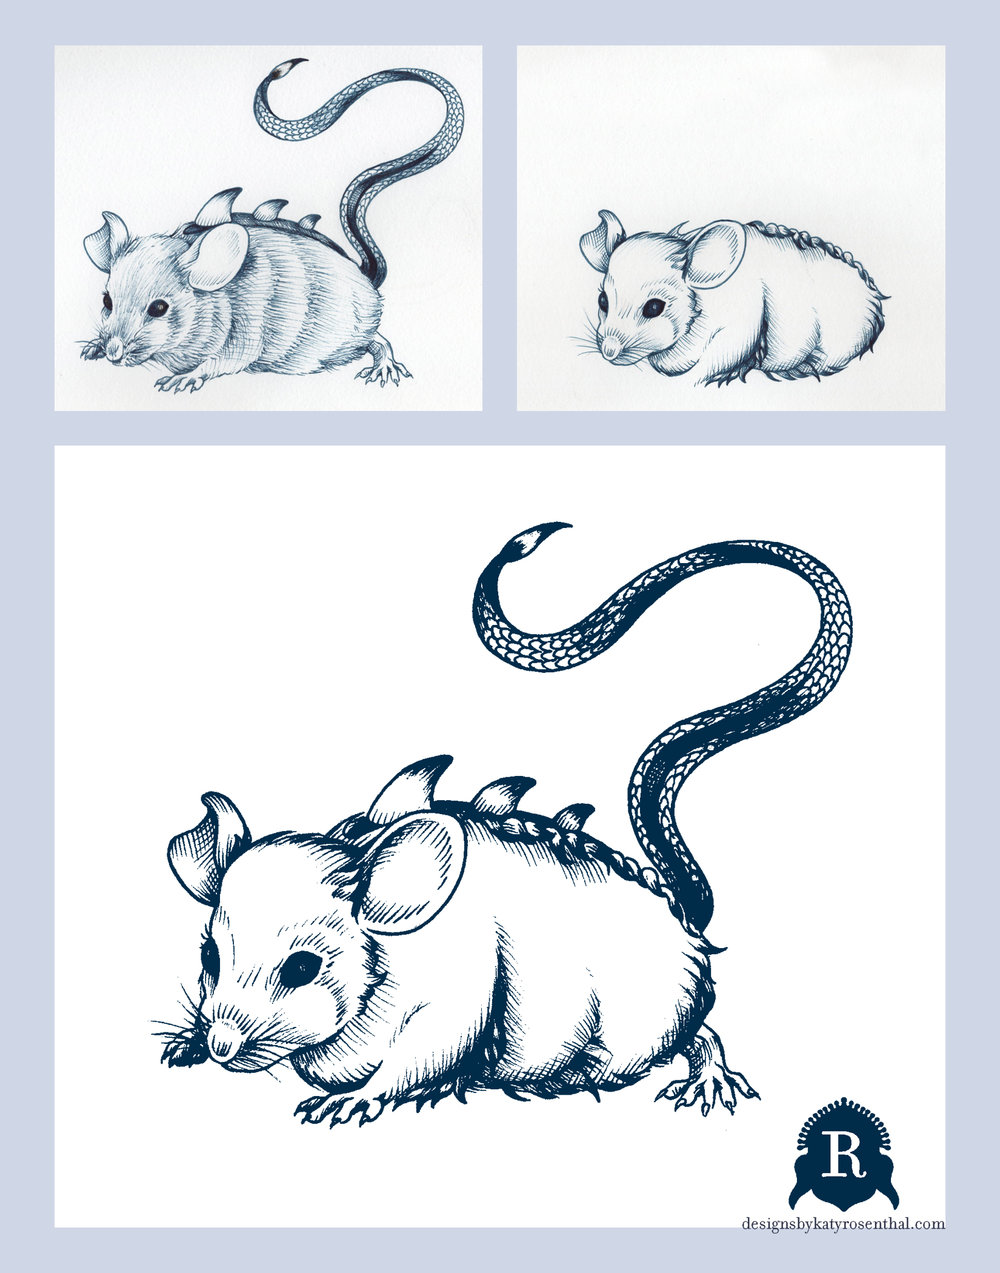 "The process for creating ""Tionae,"" my invented take on a mythological mouse with the horn-ridged back and scaly tail familiar to the lore of dragons.  In the first drawing, I was happy with the general shape and the invented, dragon-like elements, but not with the rendering of the fur.  I traced over the original and redrew the aspects I felt needed changing, splicing the two drawings together on Photoshop to achieve the final version shown on the bottom."